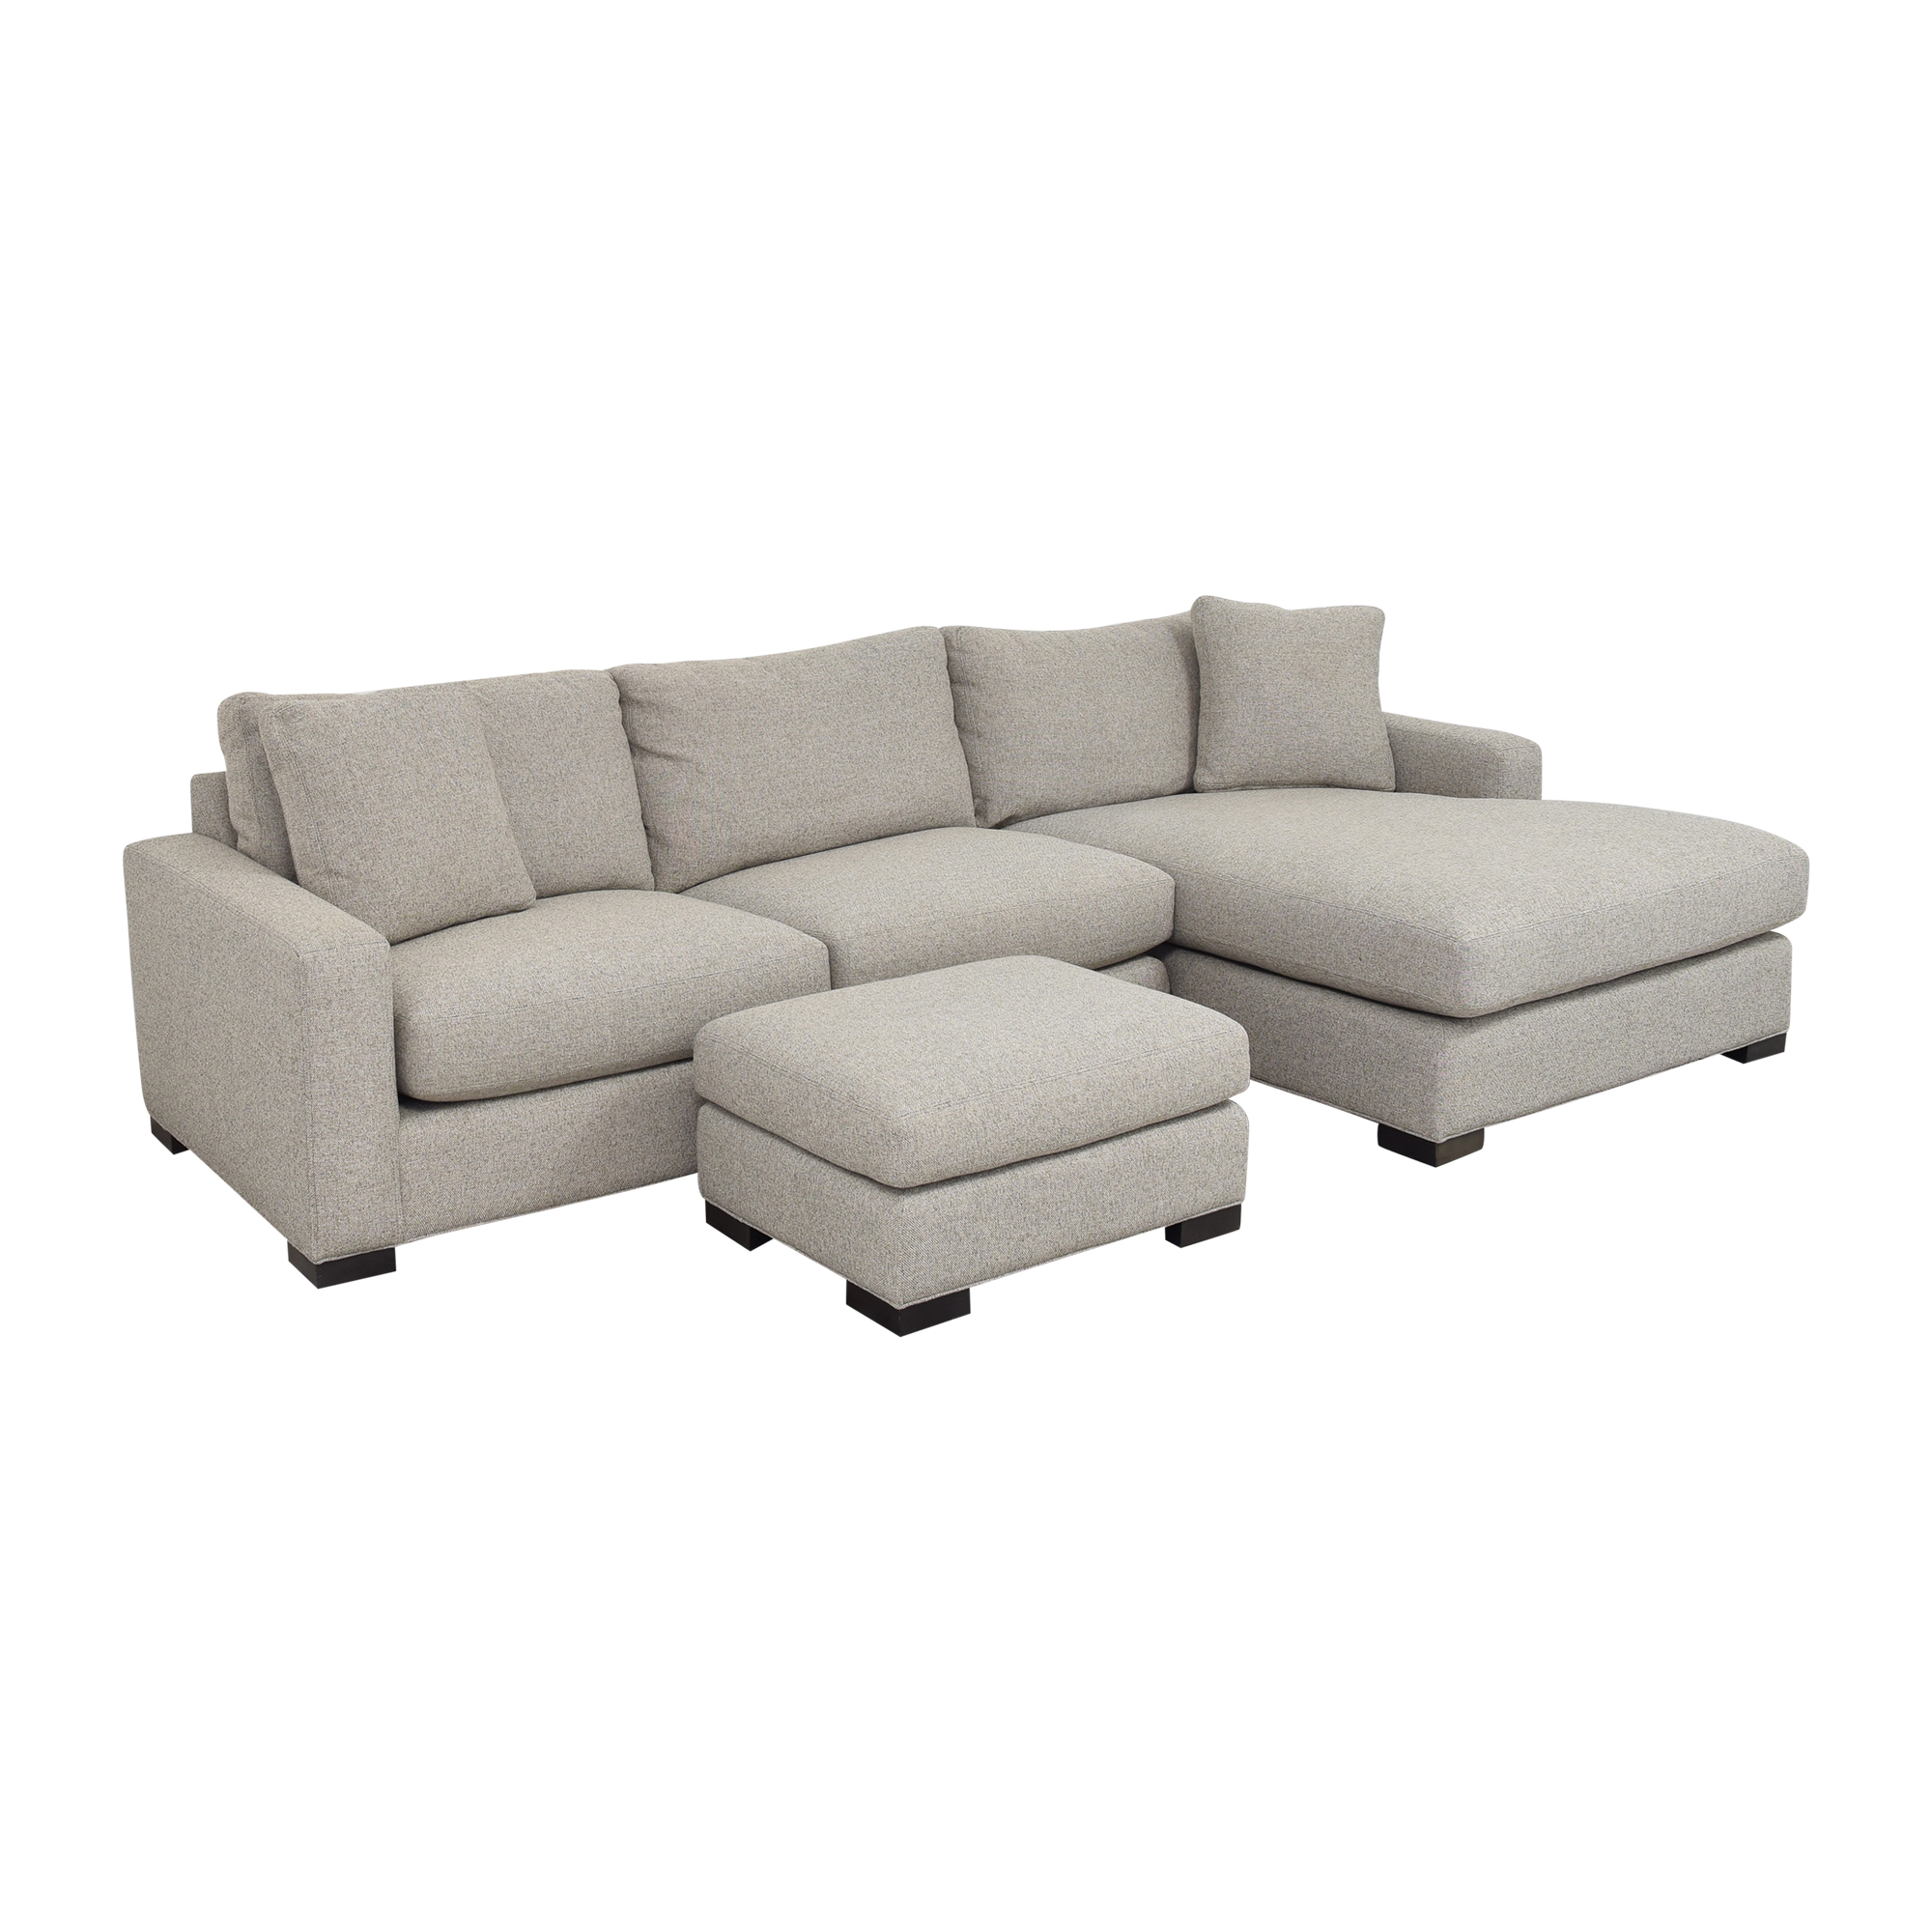 Room & Board Room & Board Metro Chaise Sectional Sofa and Ottoman ma